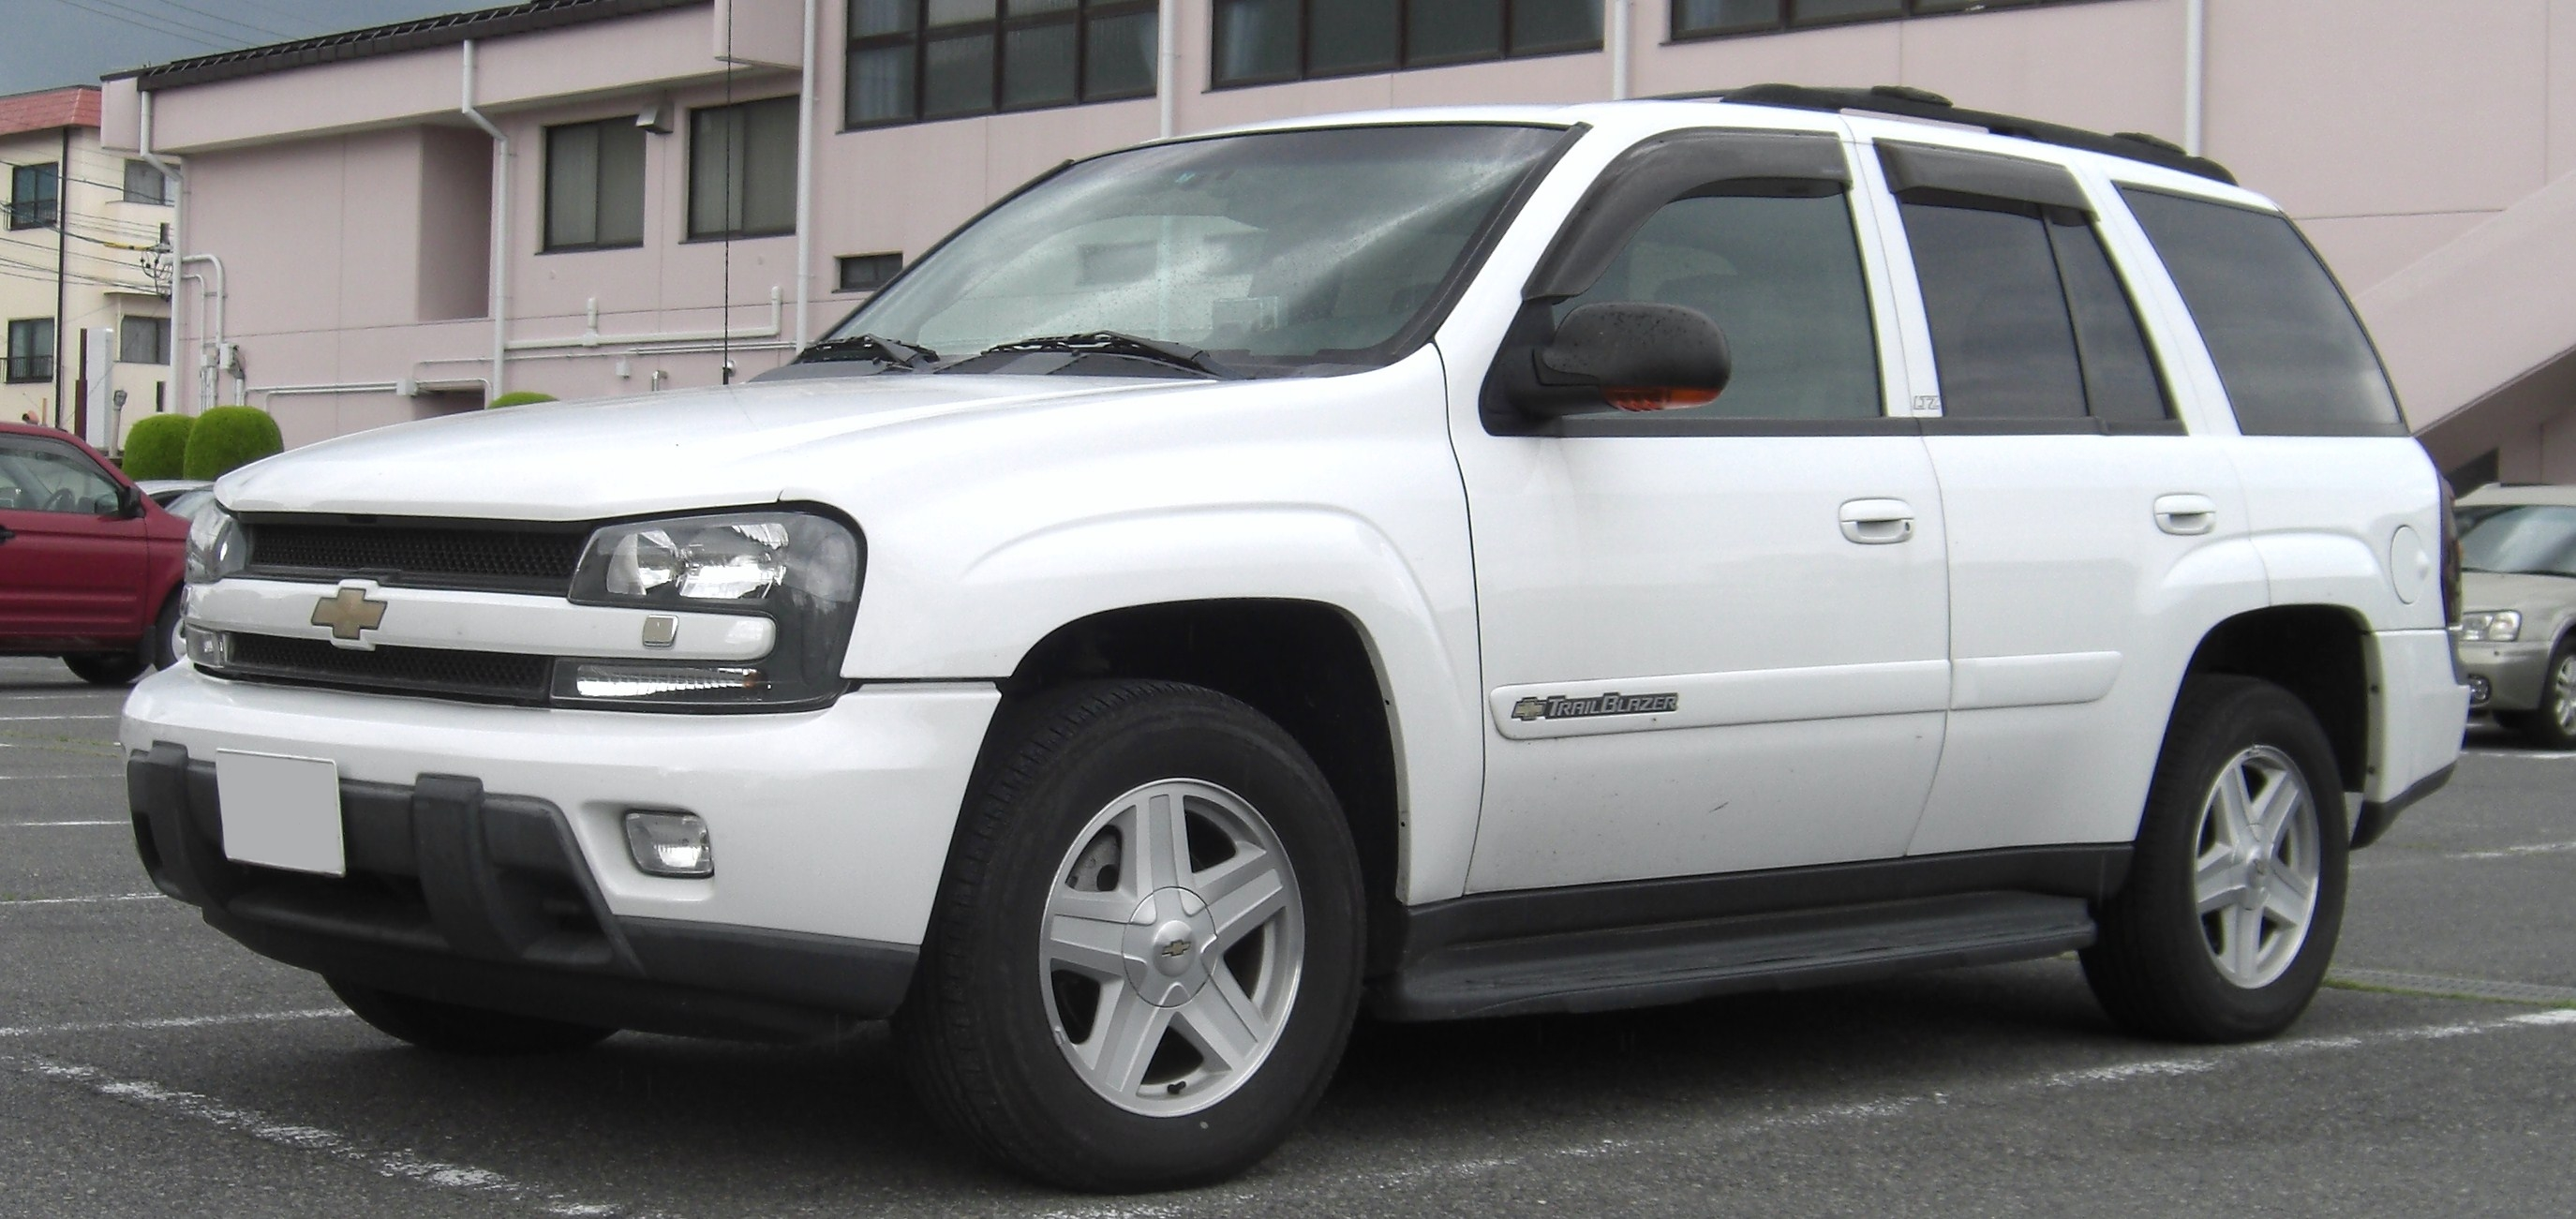 2002 Chevrolet Trailblazer #10